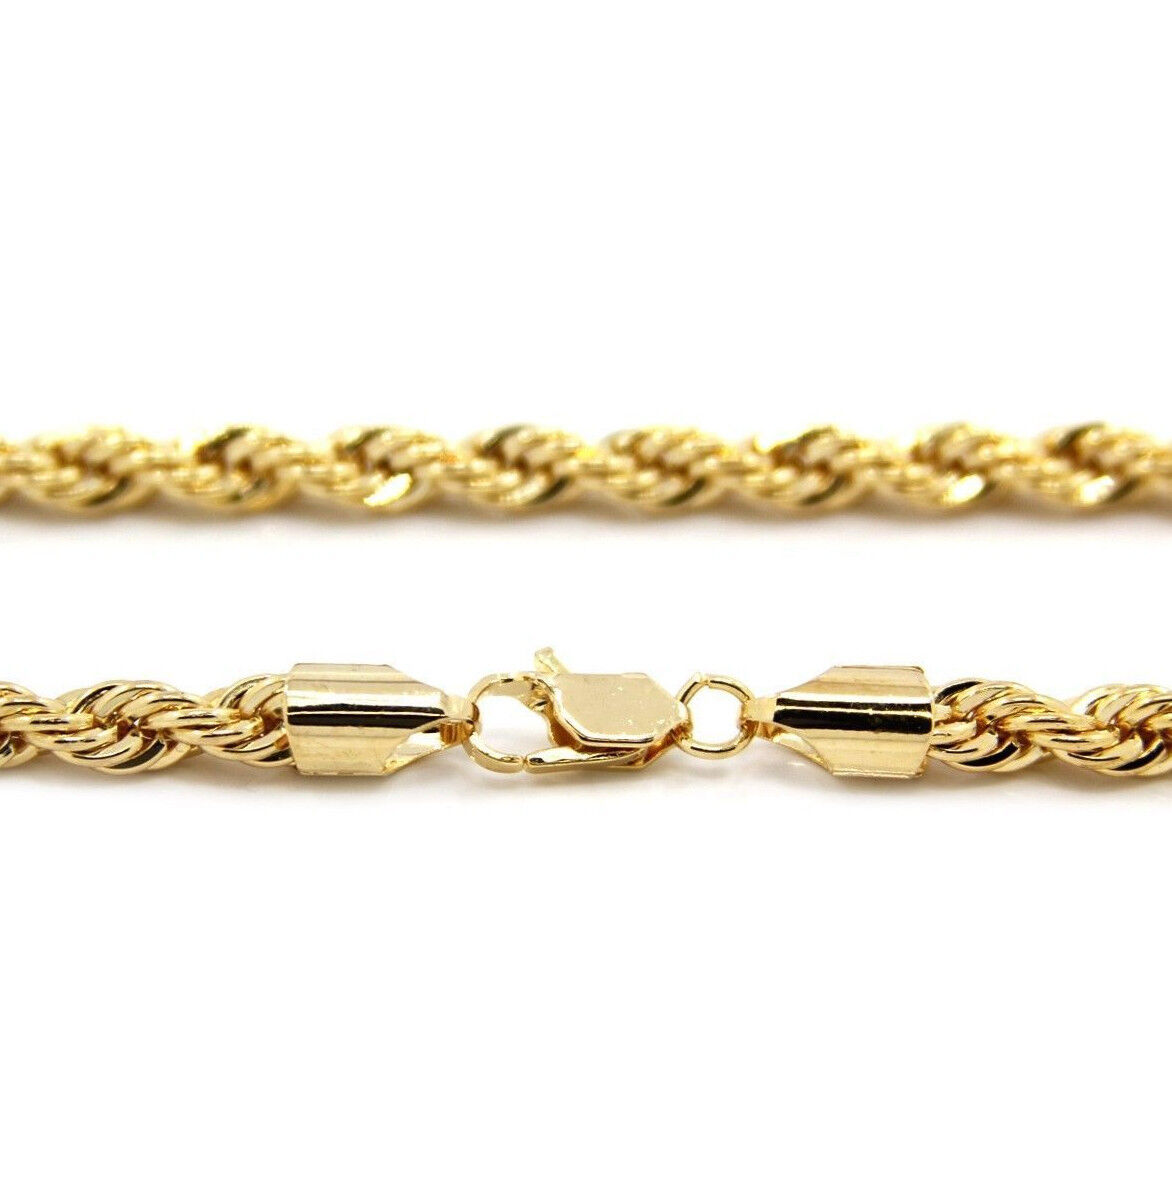 14k Gold plated rope chain men's women's 24″ inches necklace free shipping new Fine Jewelry